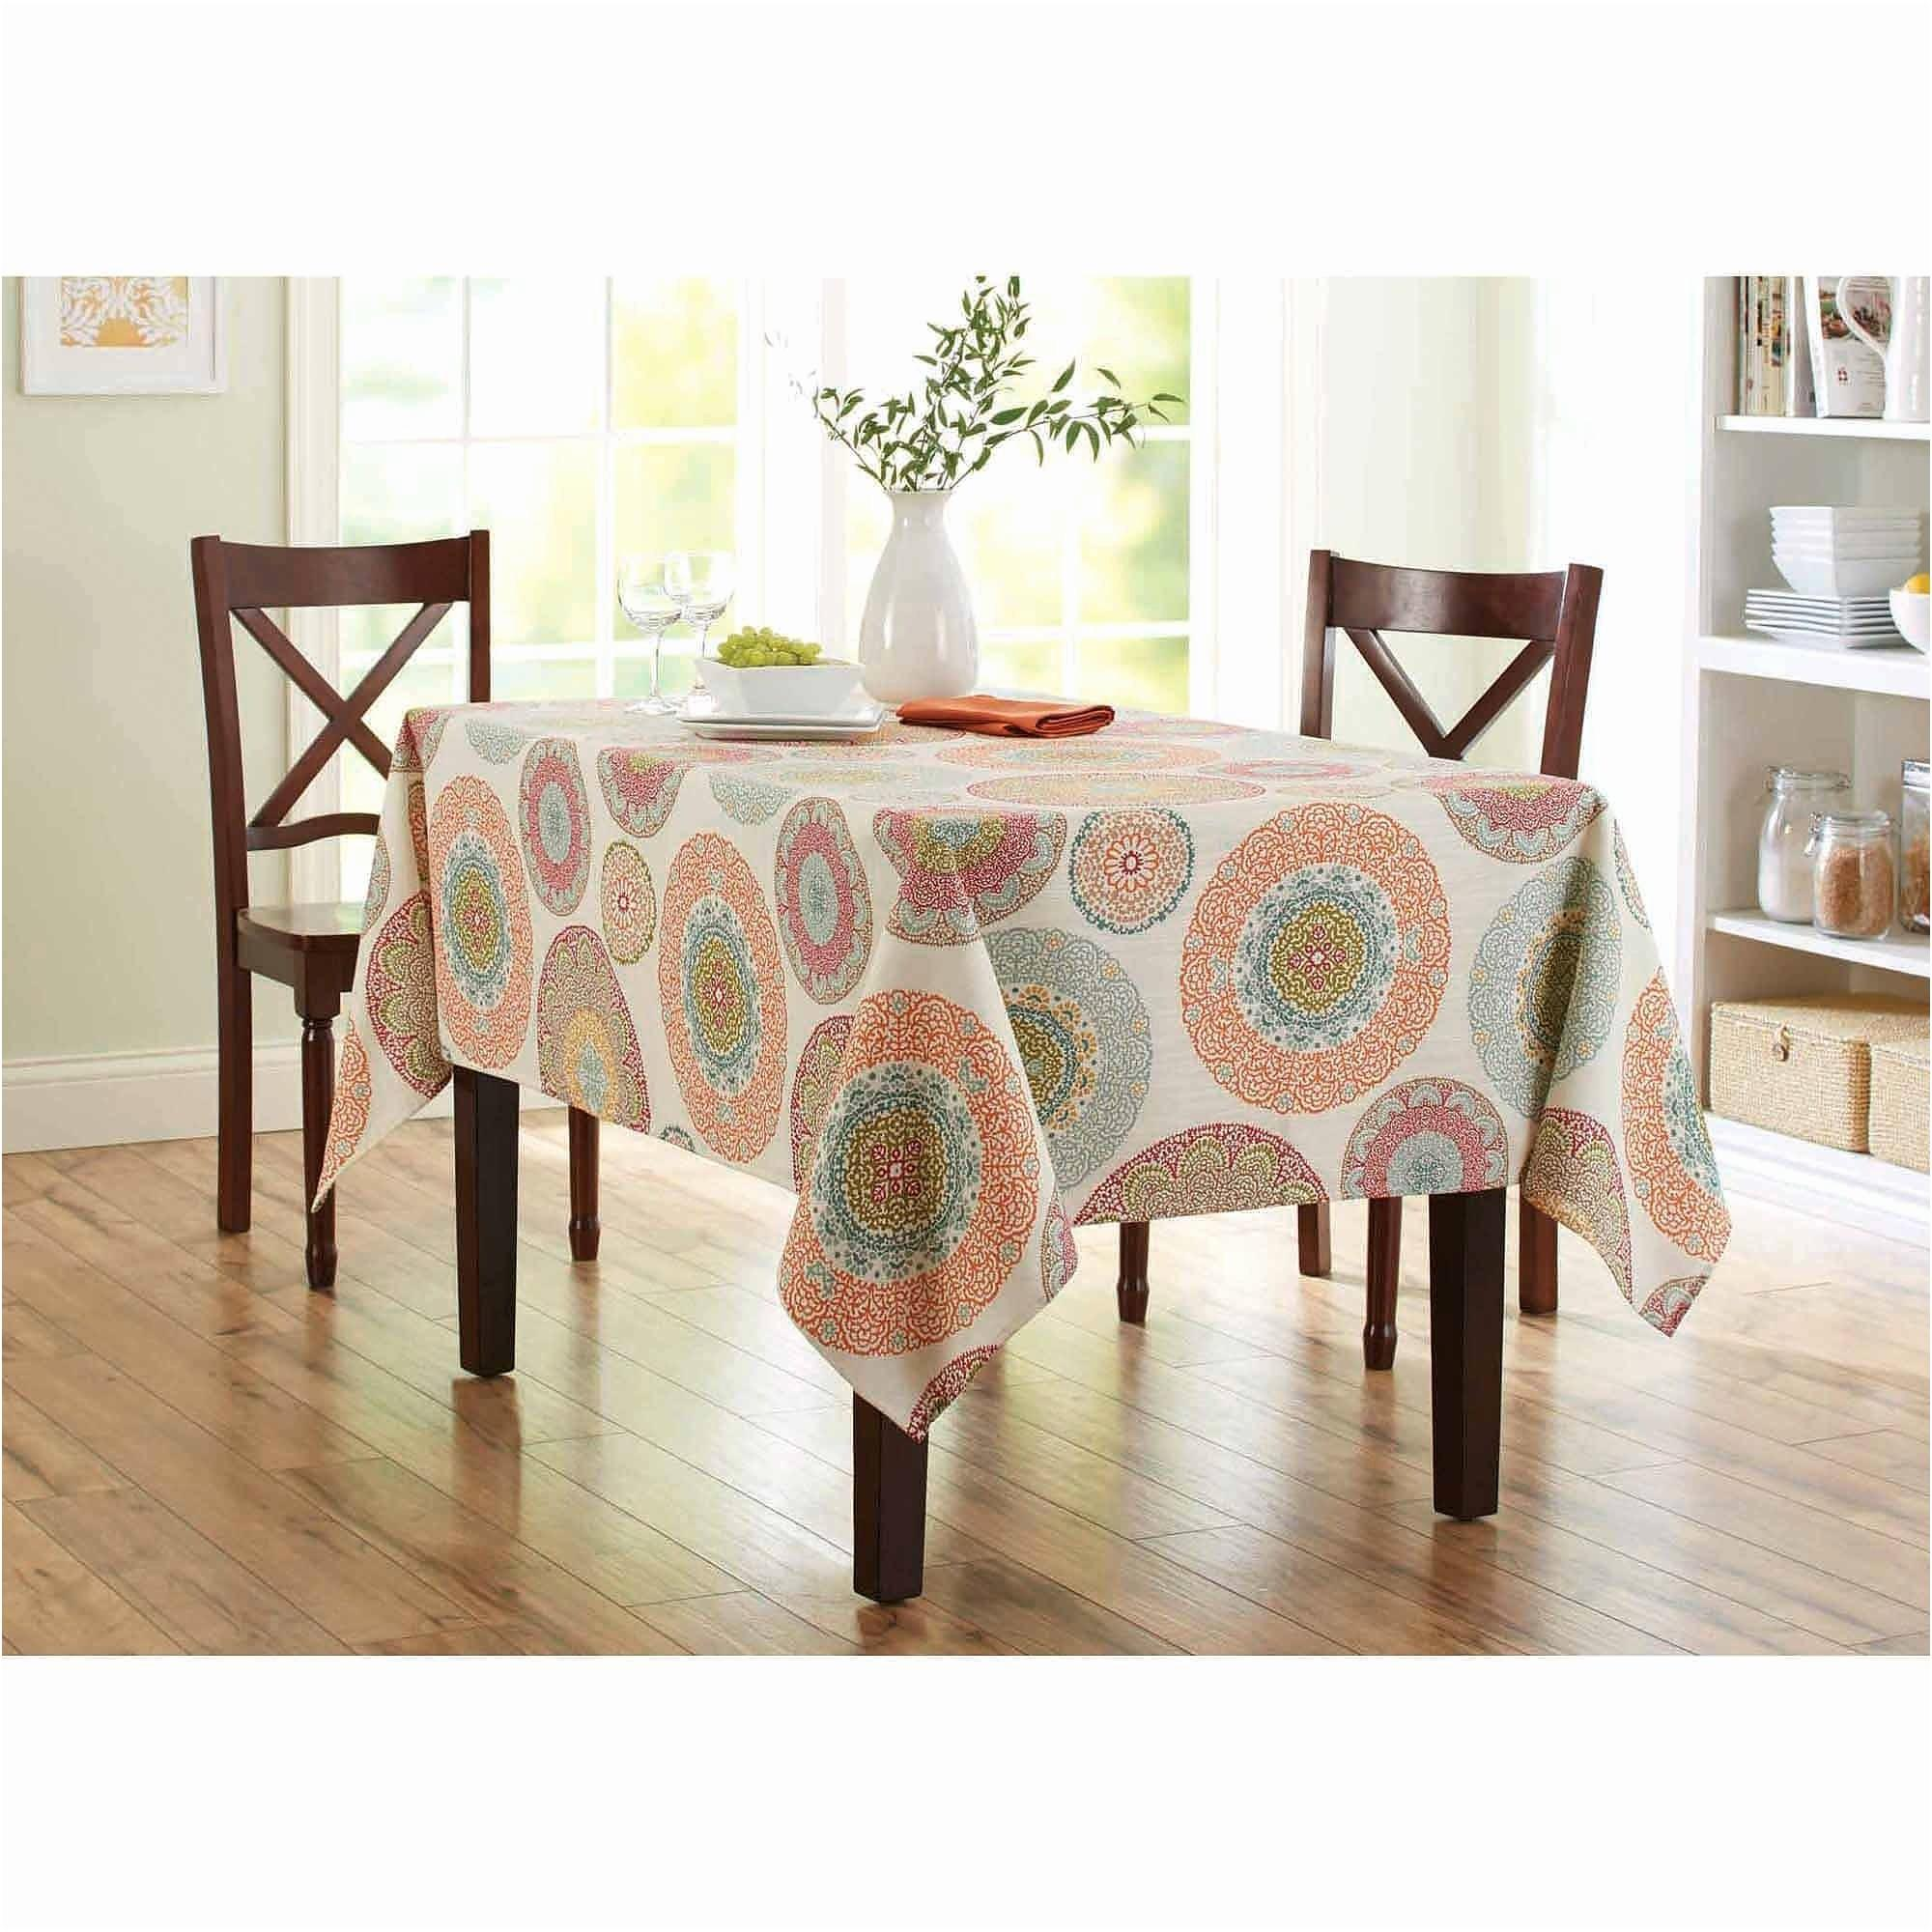 Folding Table Tablecloth Unique Dining Room Chic Ideas